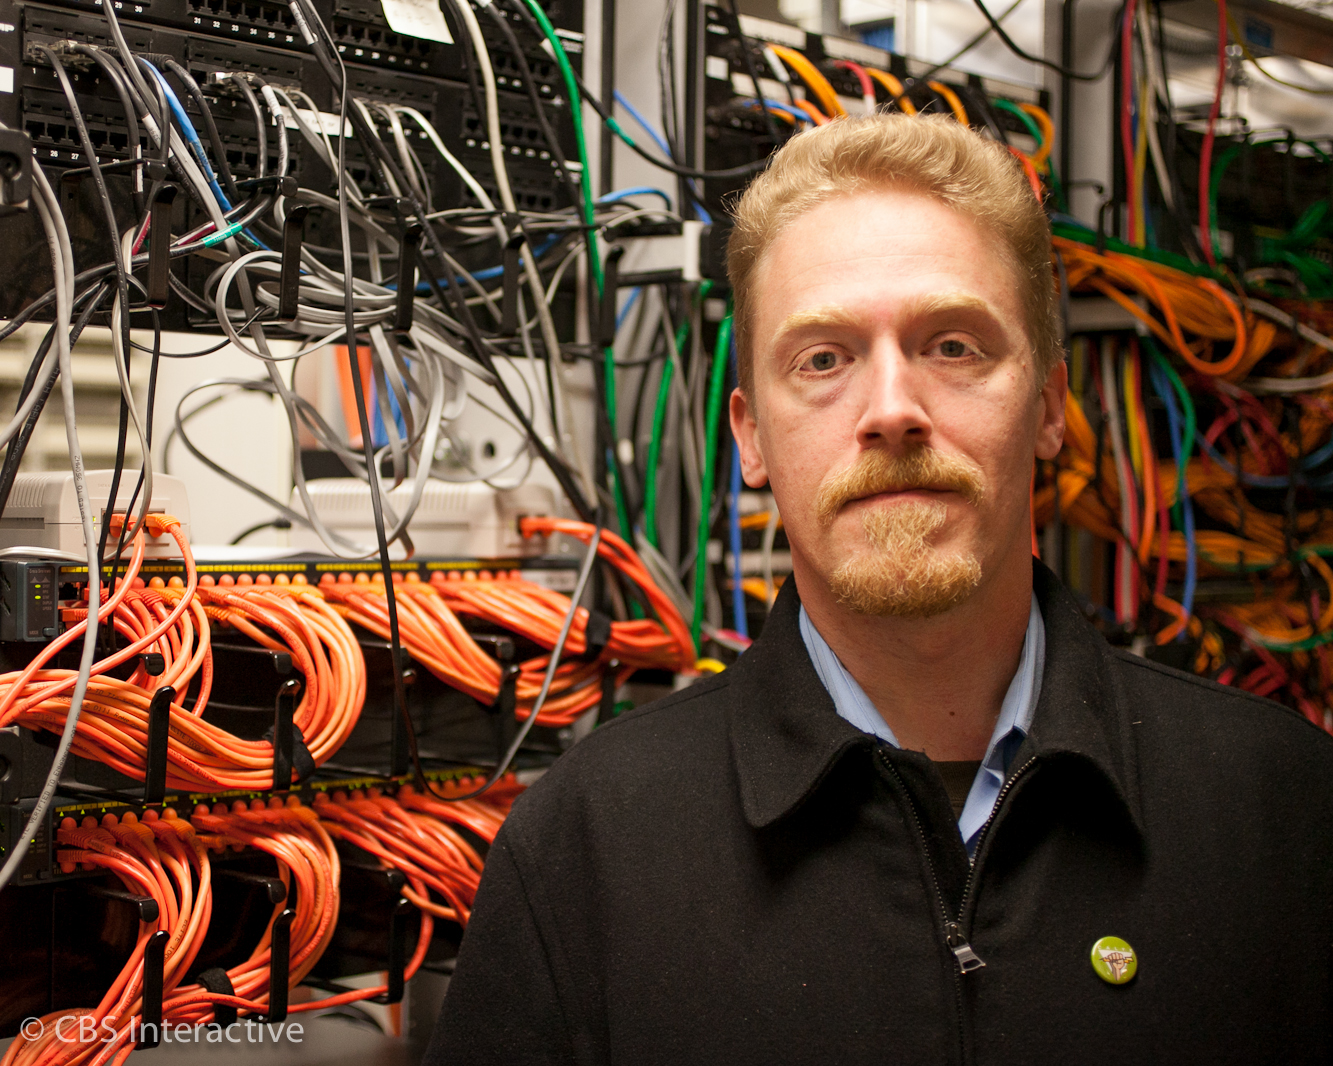 Nick Merrill, who challenged a demand from the FBI for user data, wants to create the world's first Internet provider designed to be surveillance-resistant.